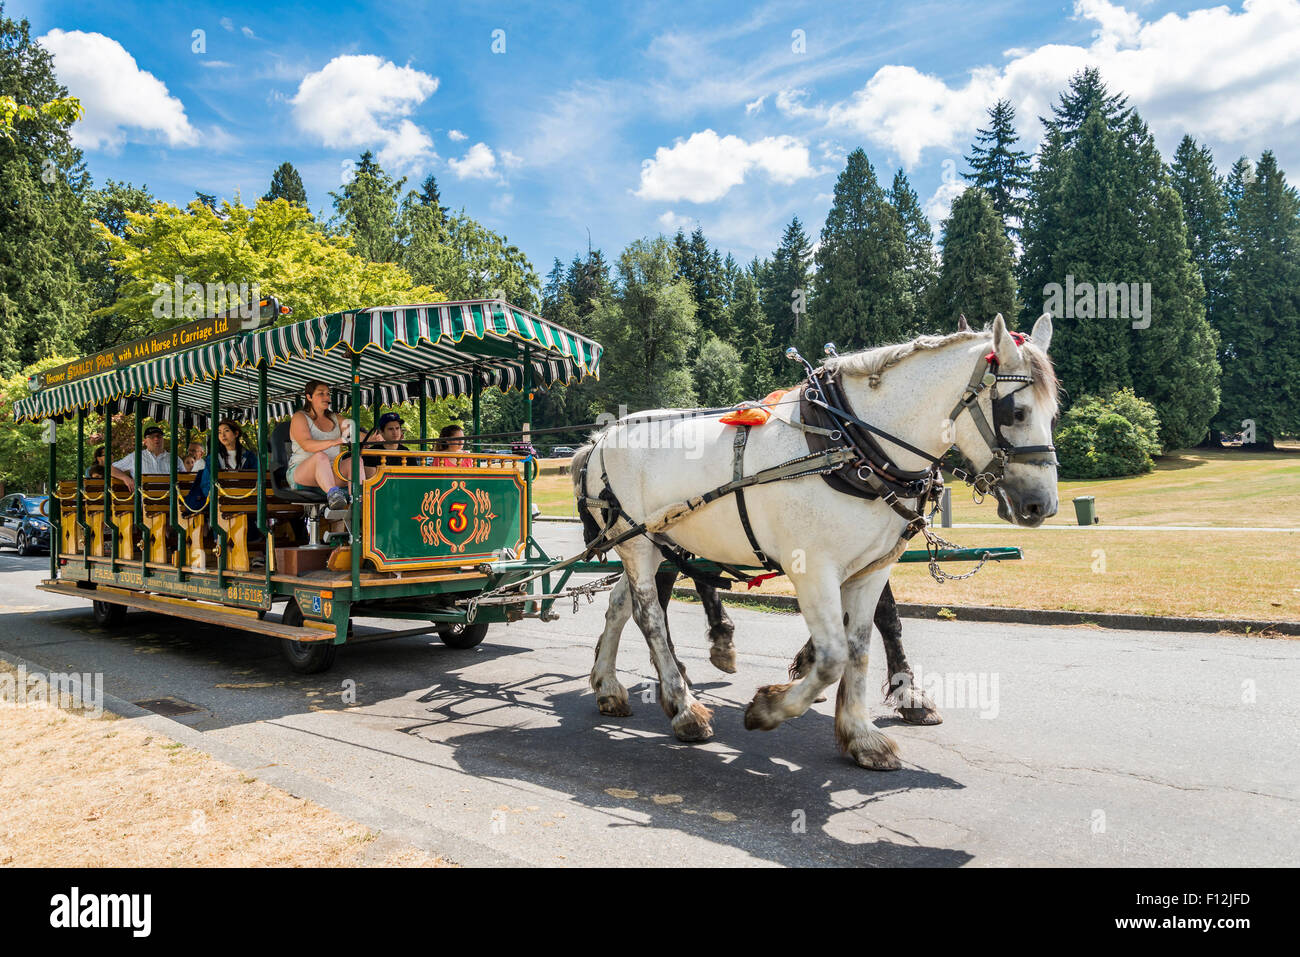 Horse drawn sightseeing carriage Stanley Park, Vancouver, British Columbia, Canada - Stock Image